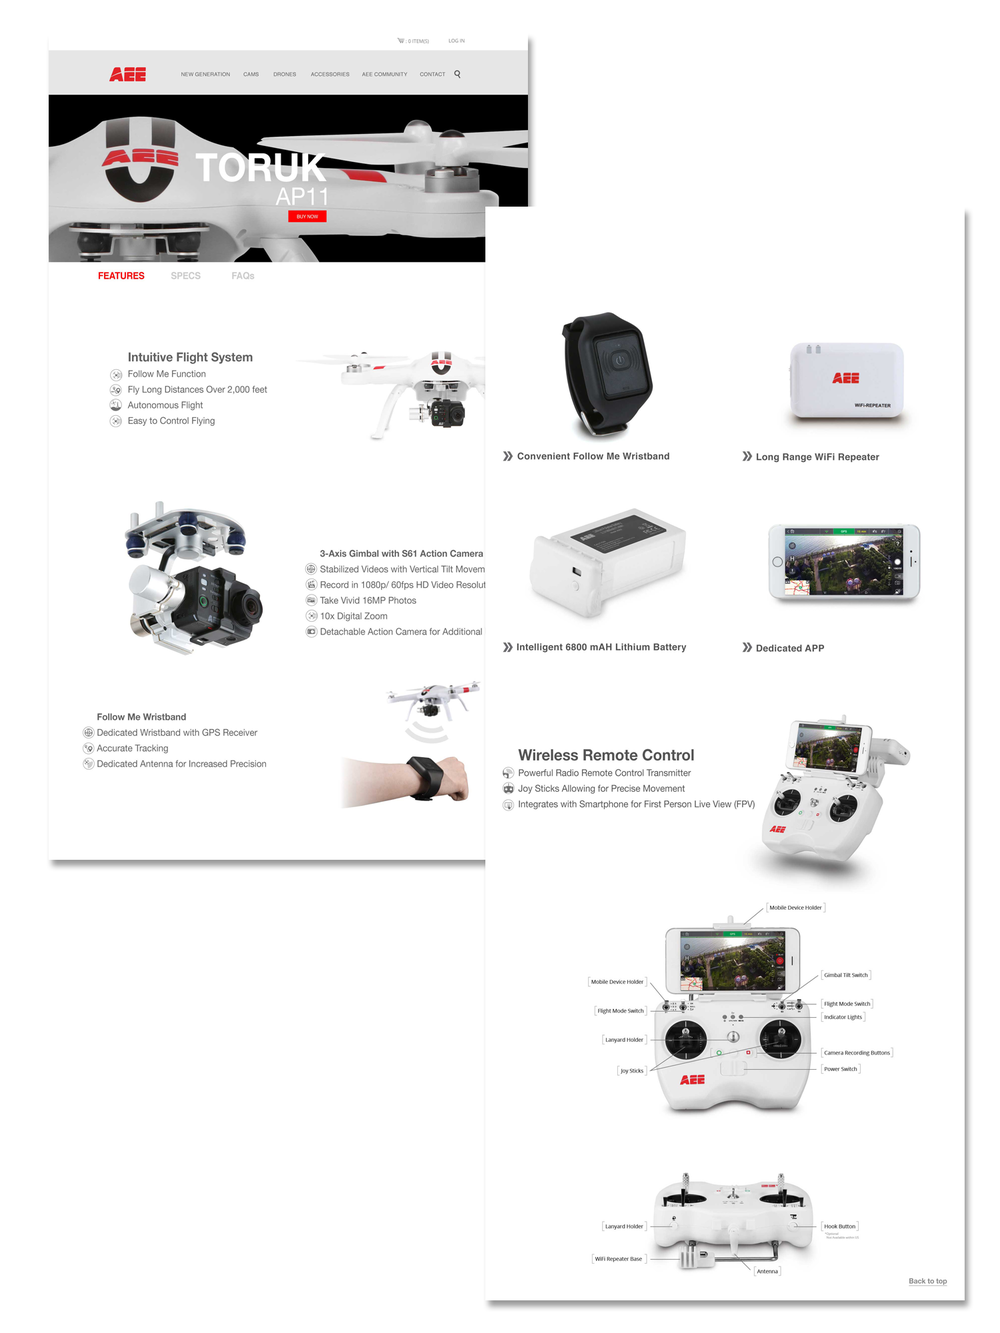 AEE Product Page   Product page for AP-11 Drone. User is able to navigate through product features, specs and FAQ's and learn more about the AP-11 Drone. You are also able to add to cart and make purchase.